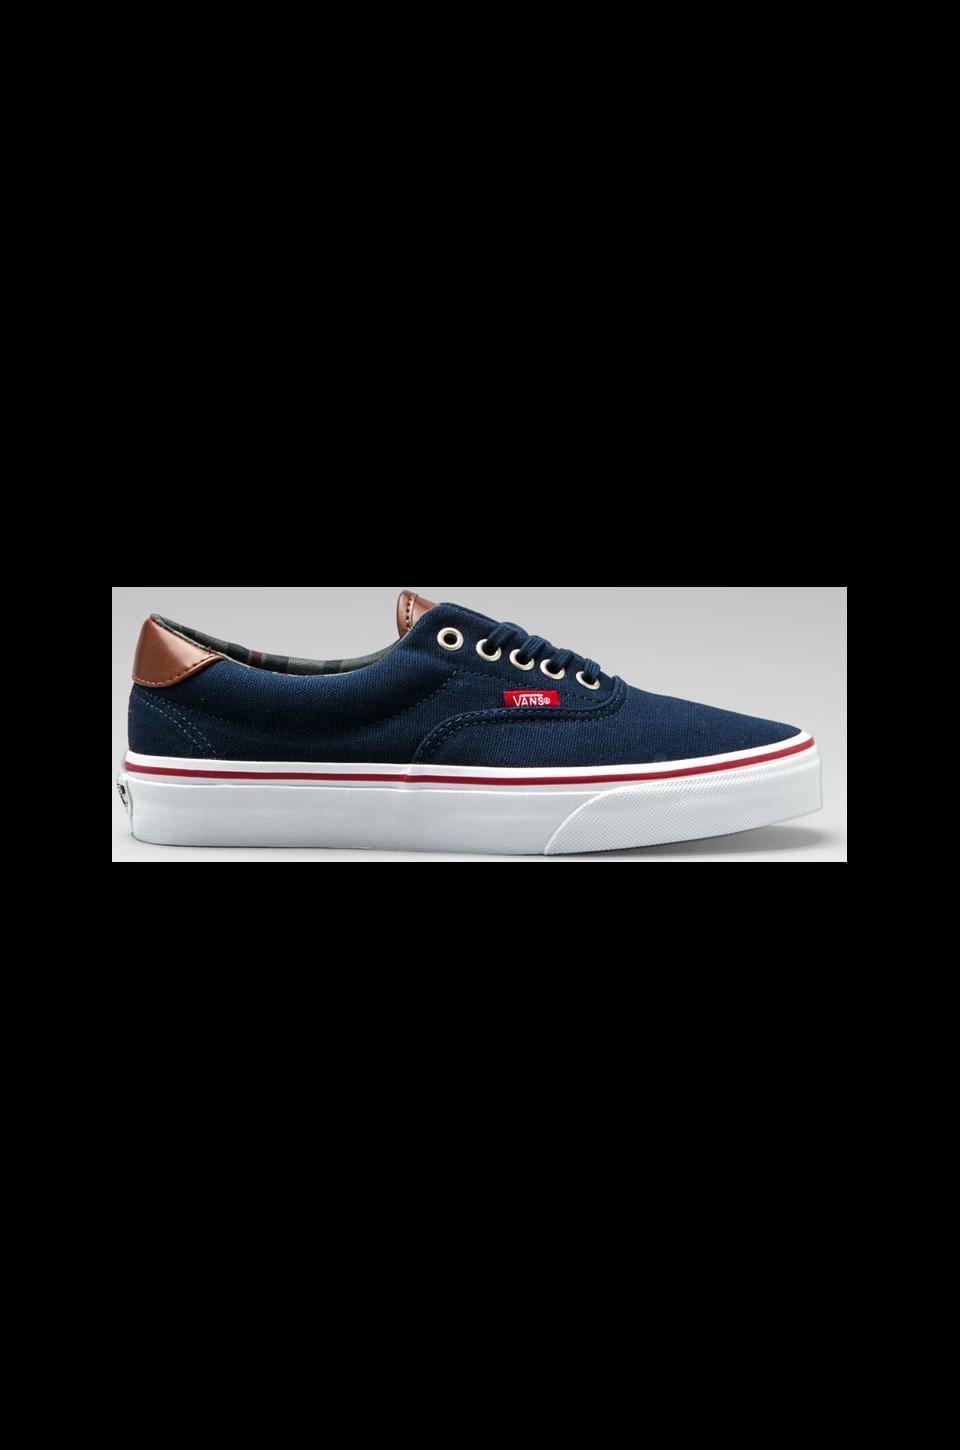 Vans Era 59 in Navy/Stripes